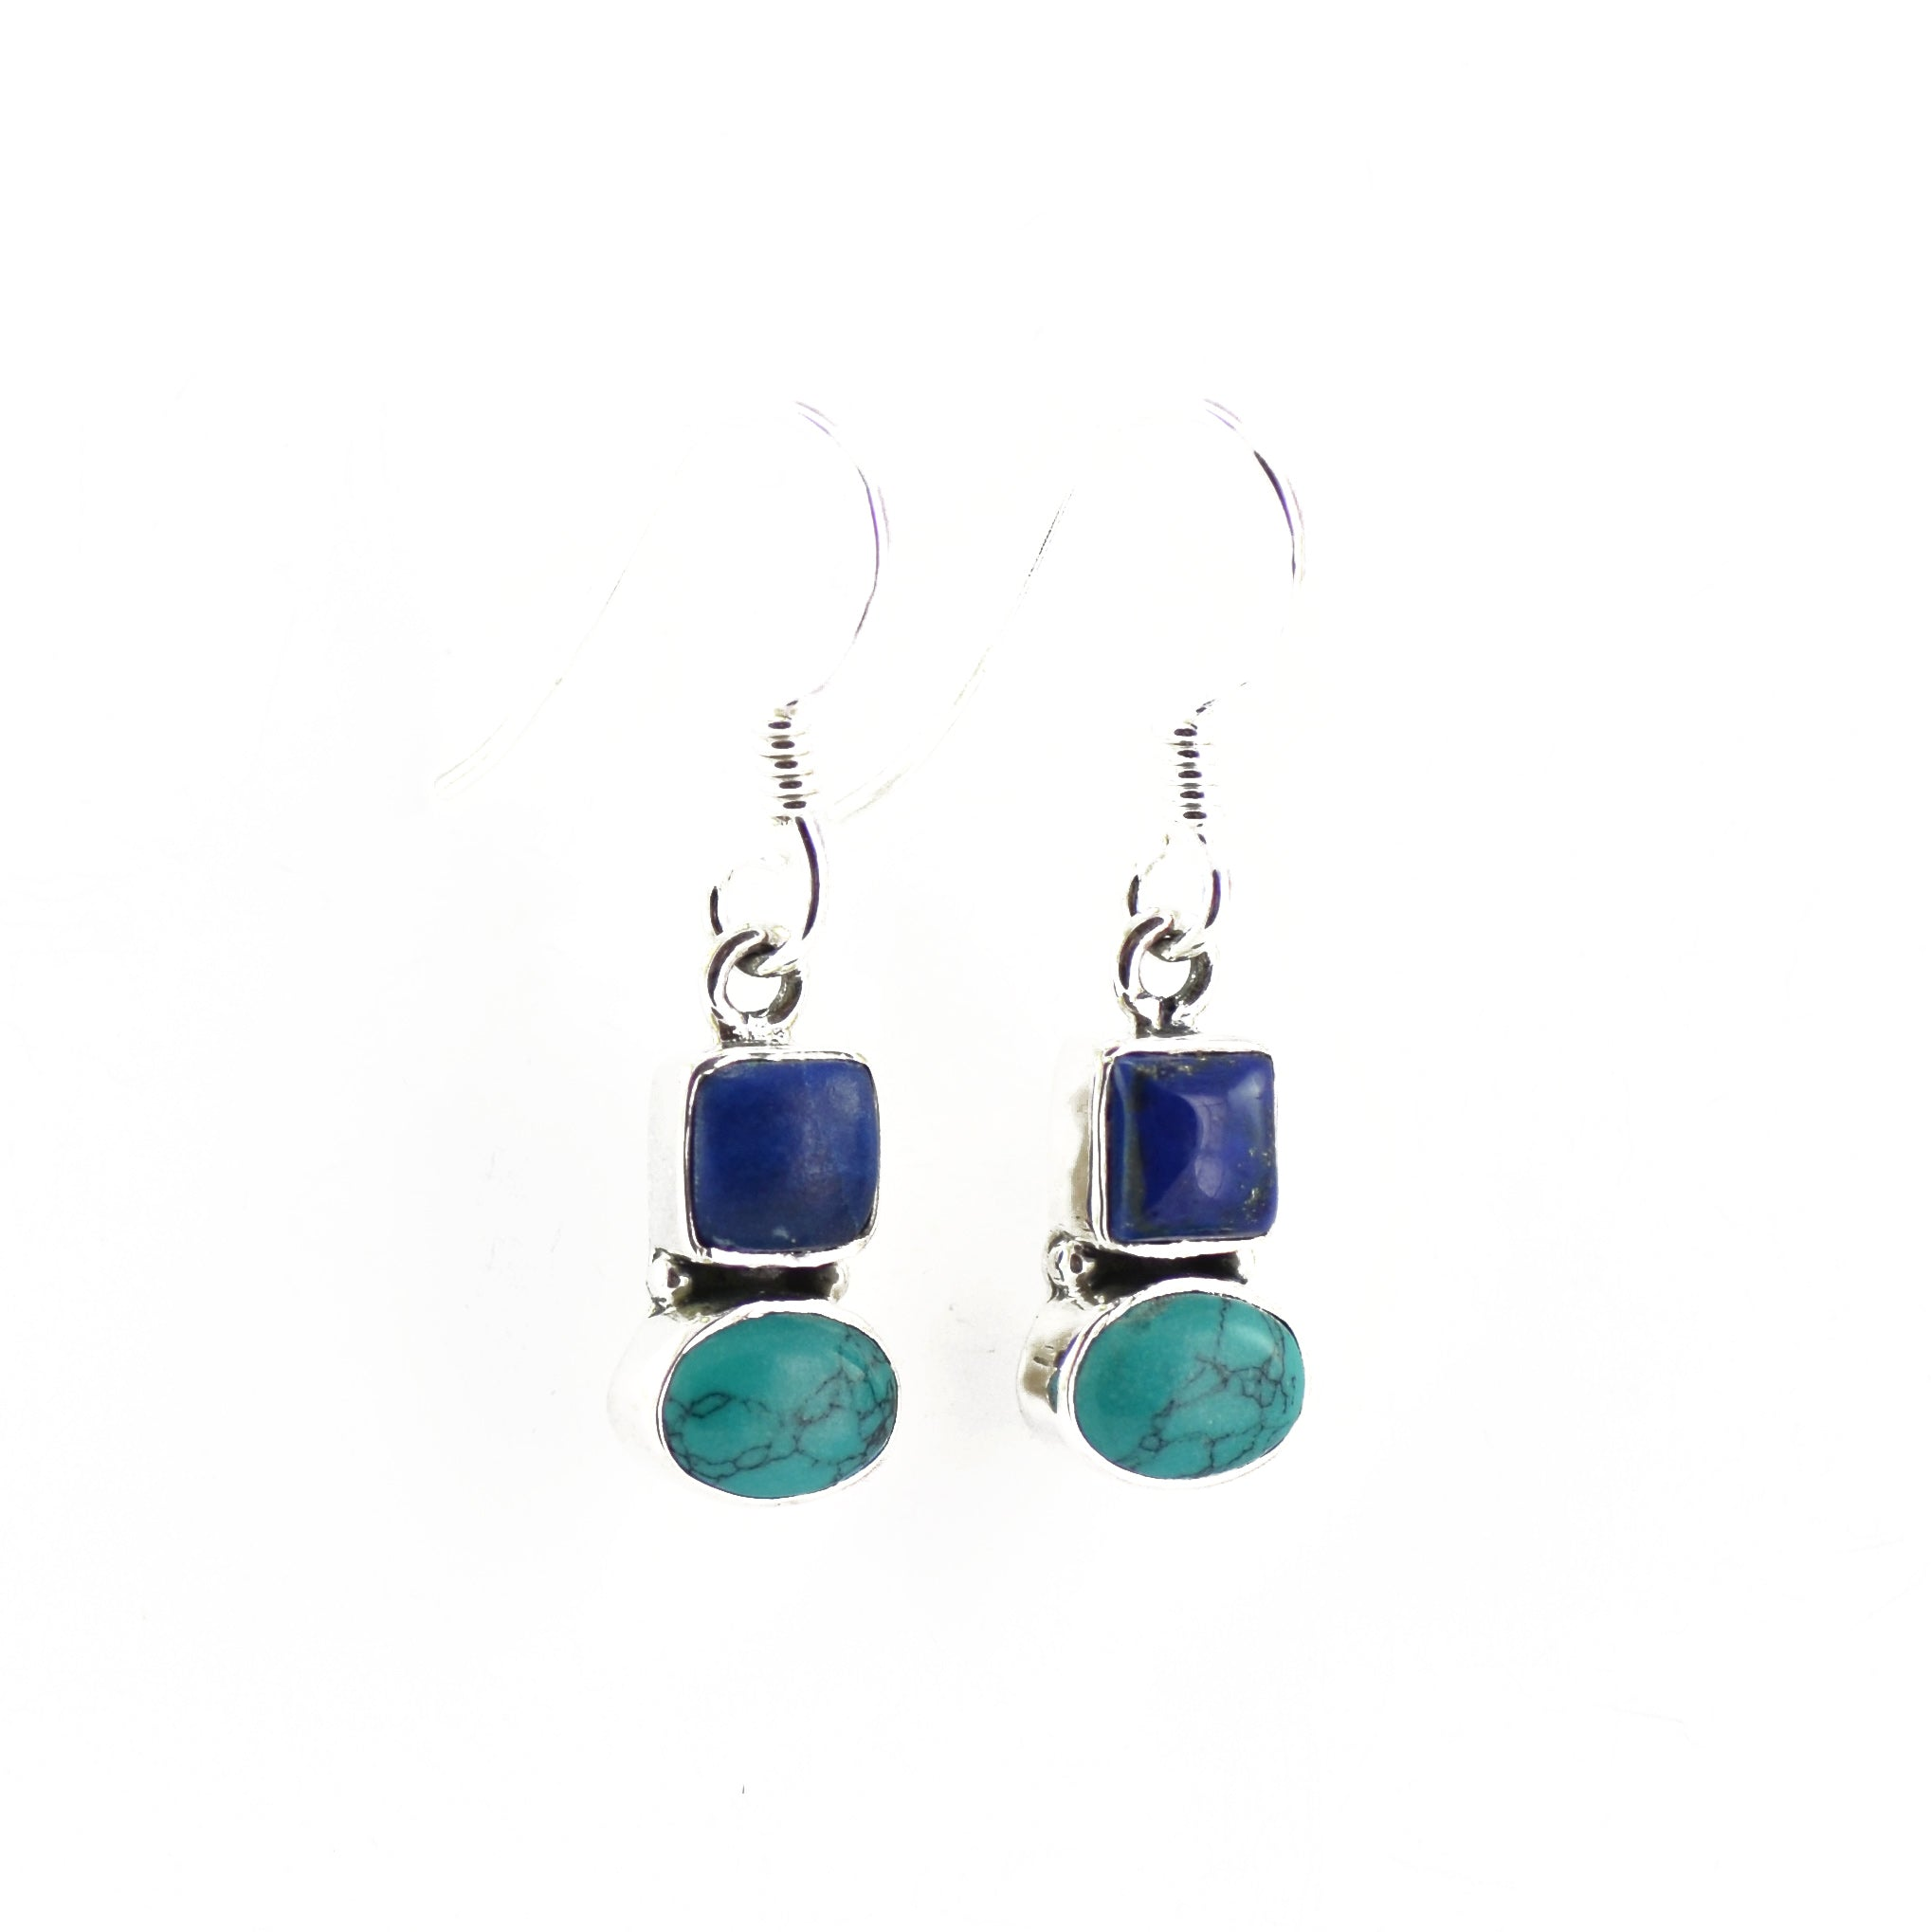 Silver and Turquoise Earrings with Lapis Lazuli Support